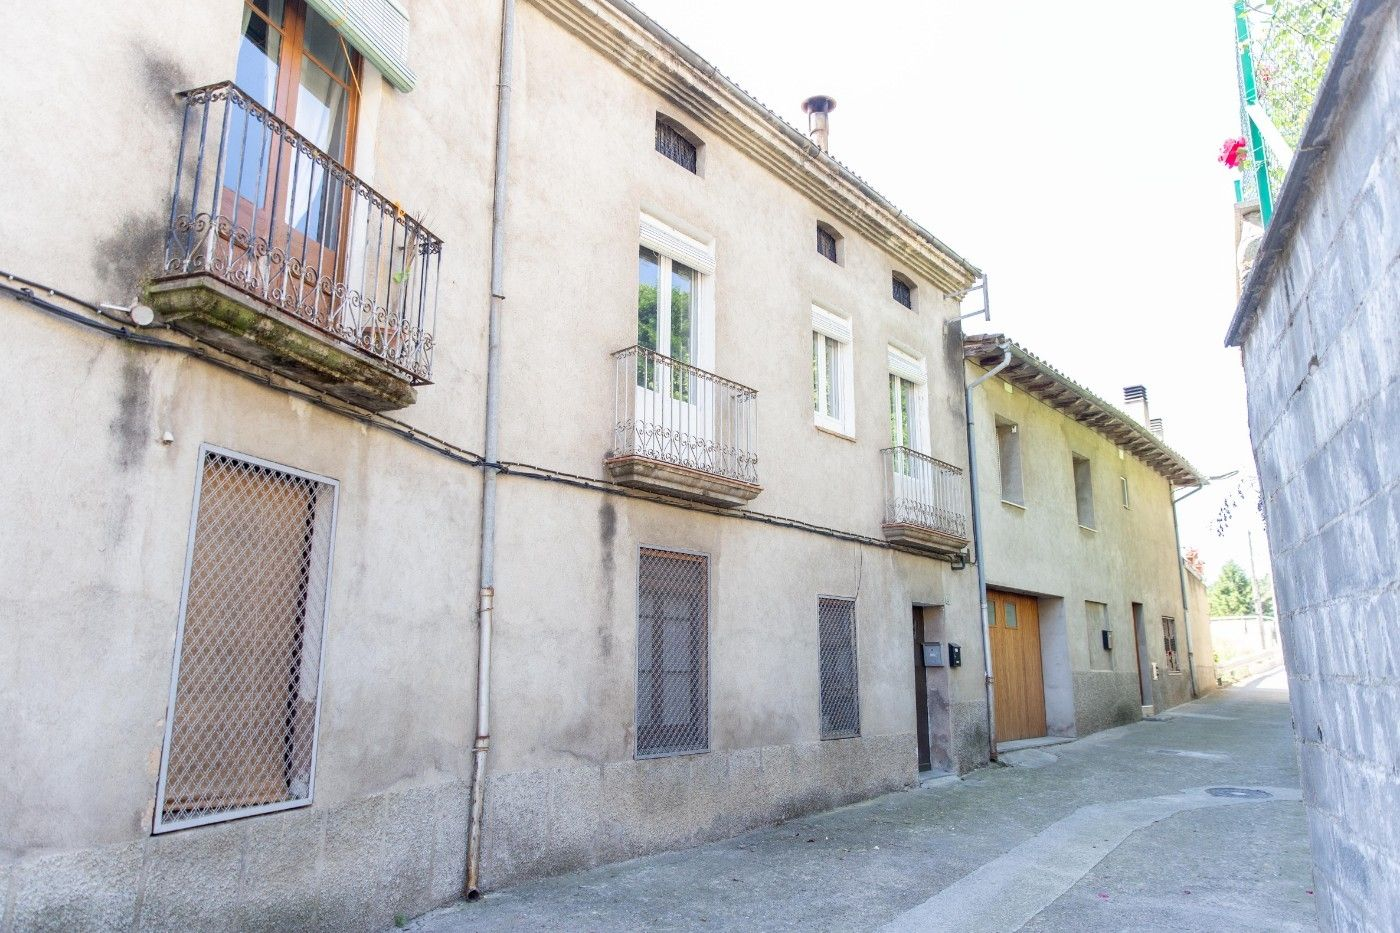 House in Carrer besora, 4. Al centre del poble